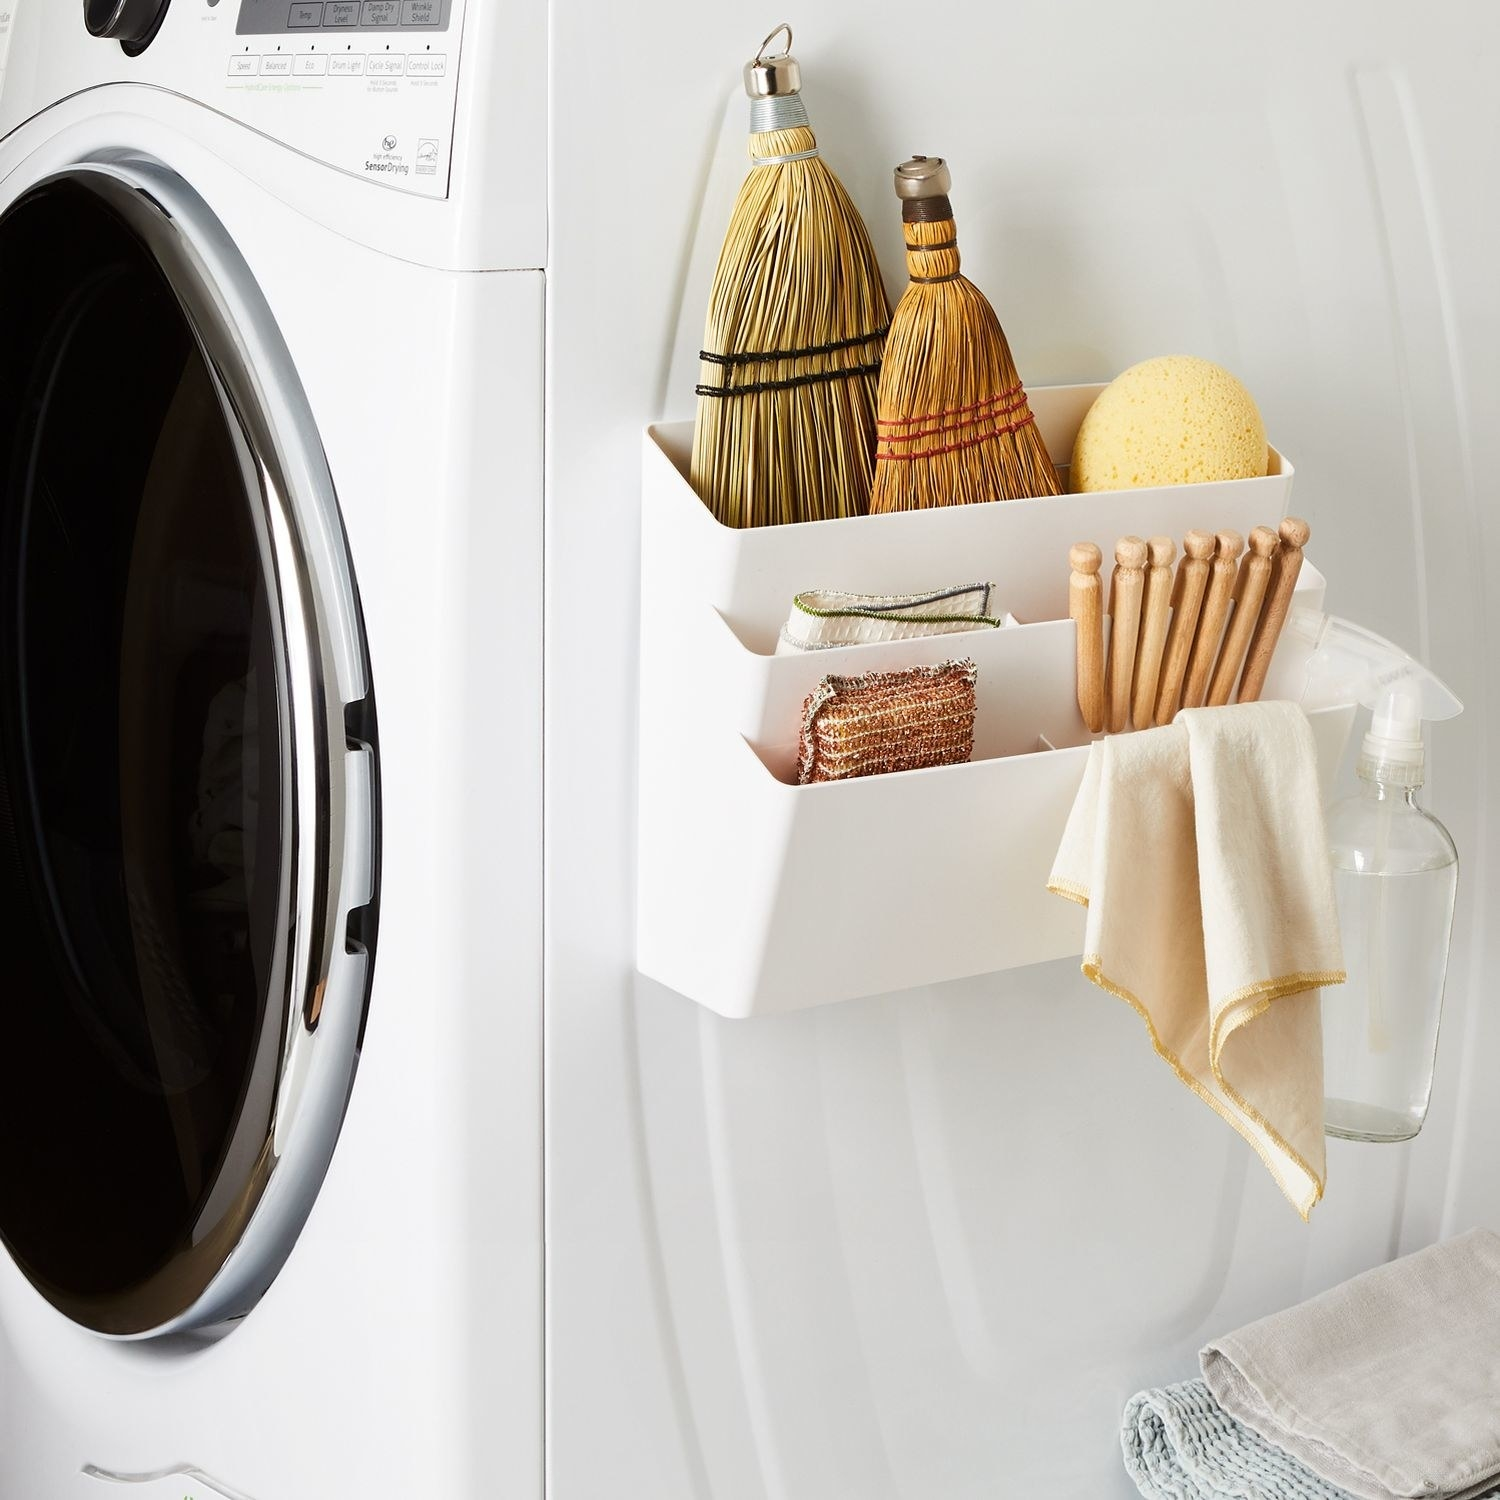 A white three-tier pocket on the side of a washing machine with assorted accessories in it